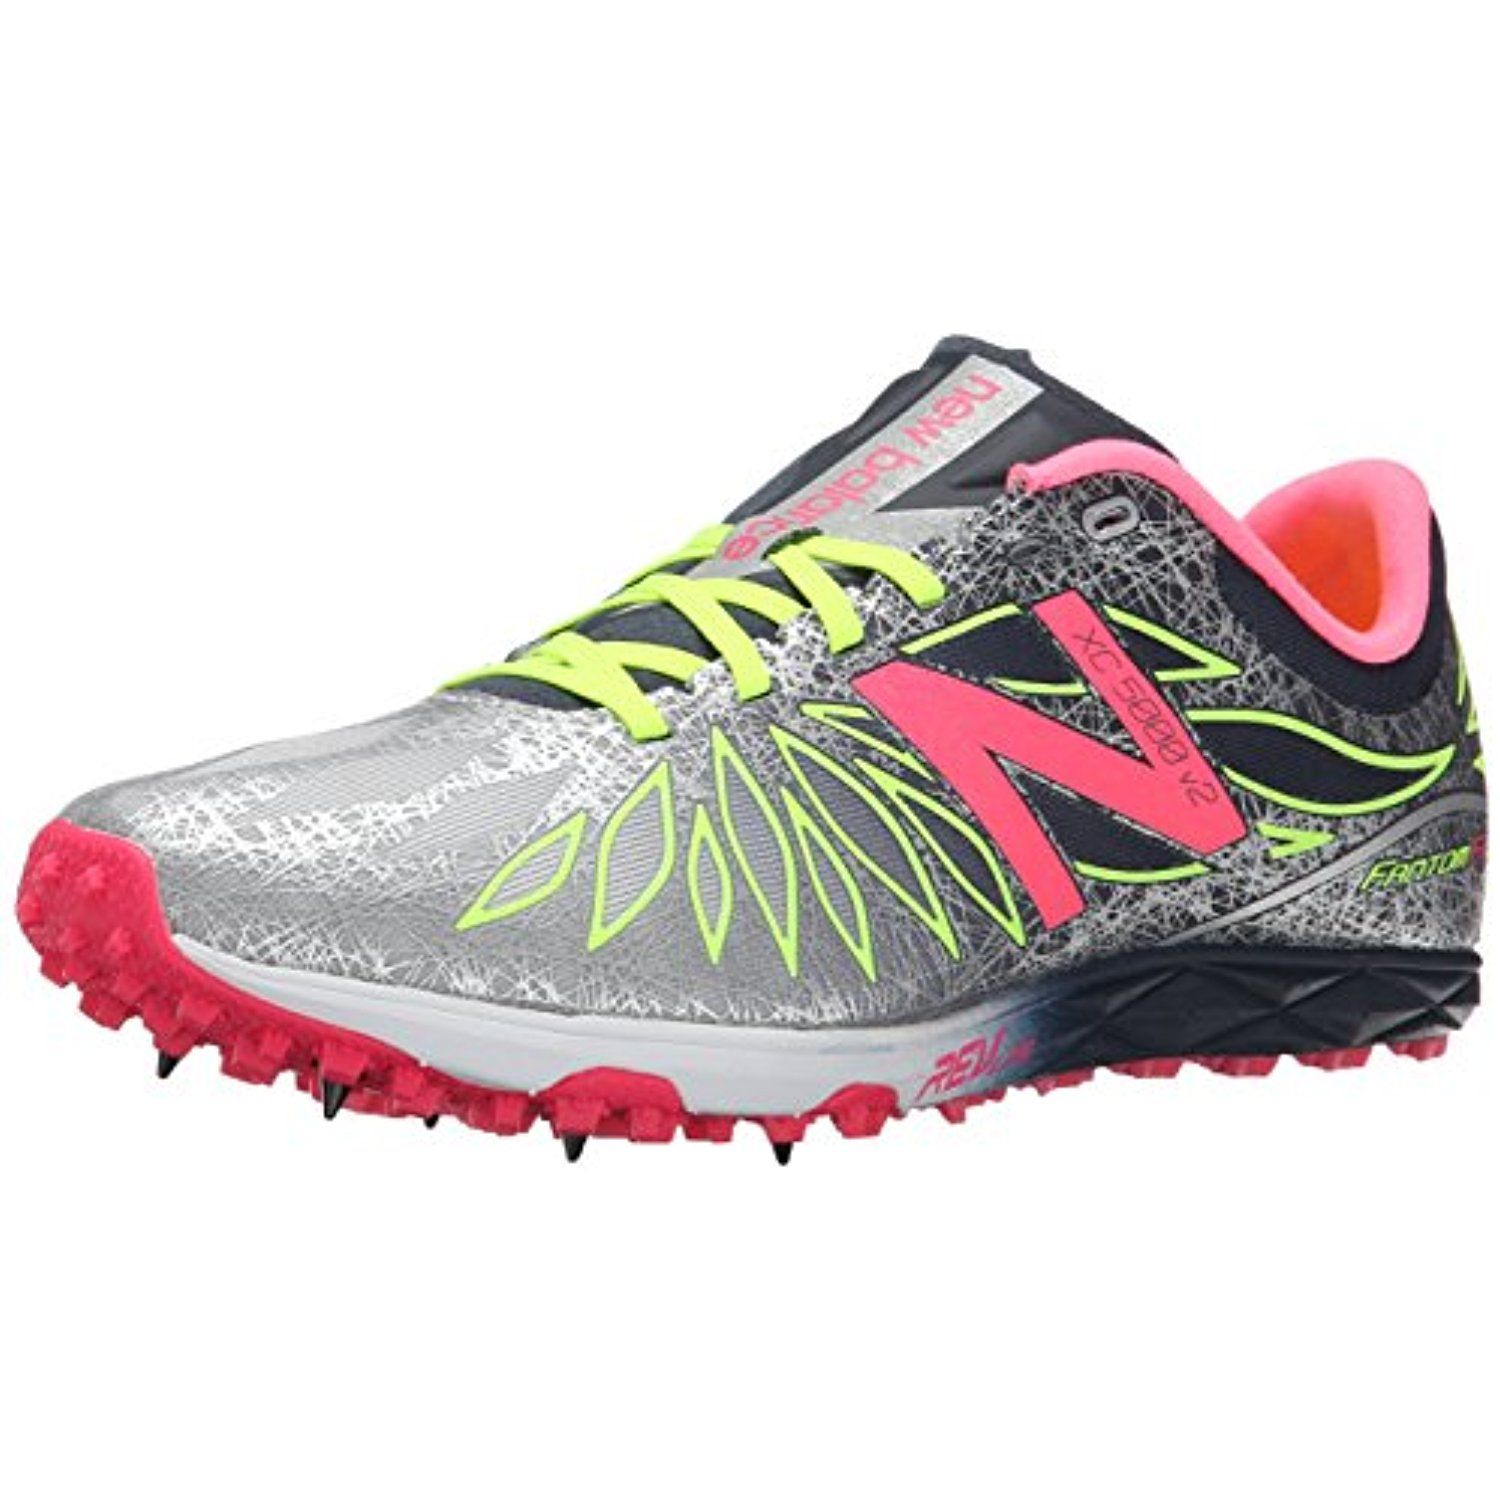 New Balance Women's WXC5000 Cross Country Spike Shoe,Yellow/Red,11 B US